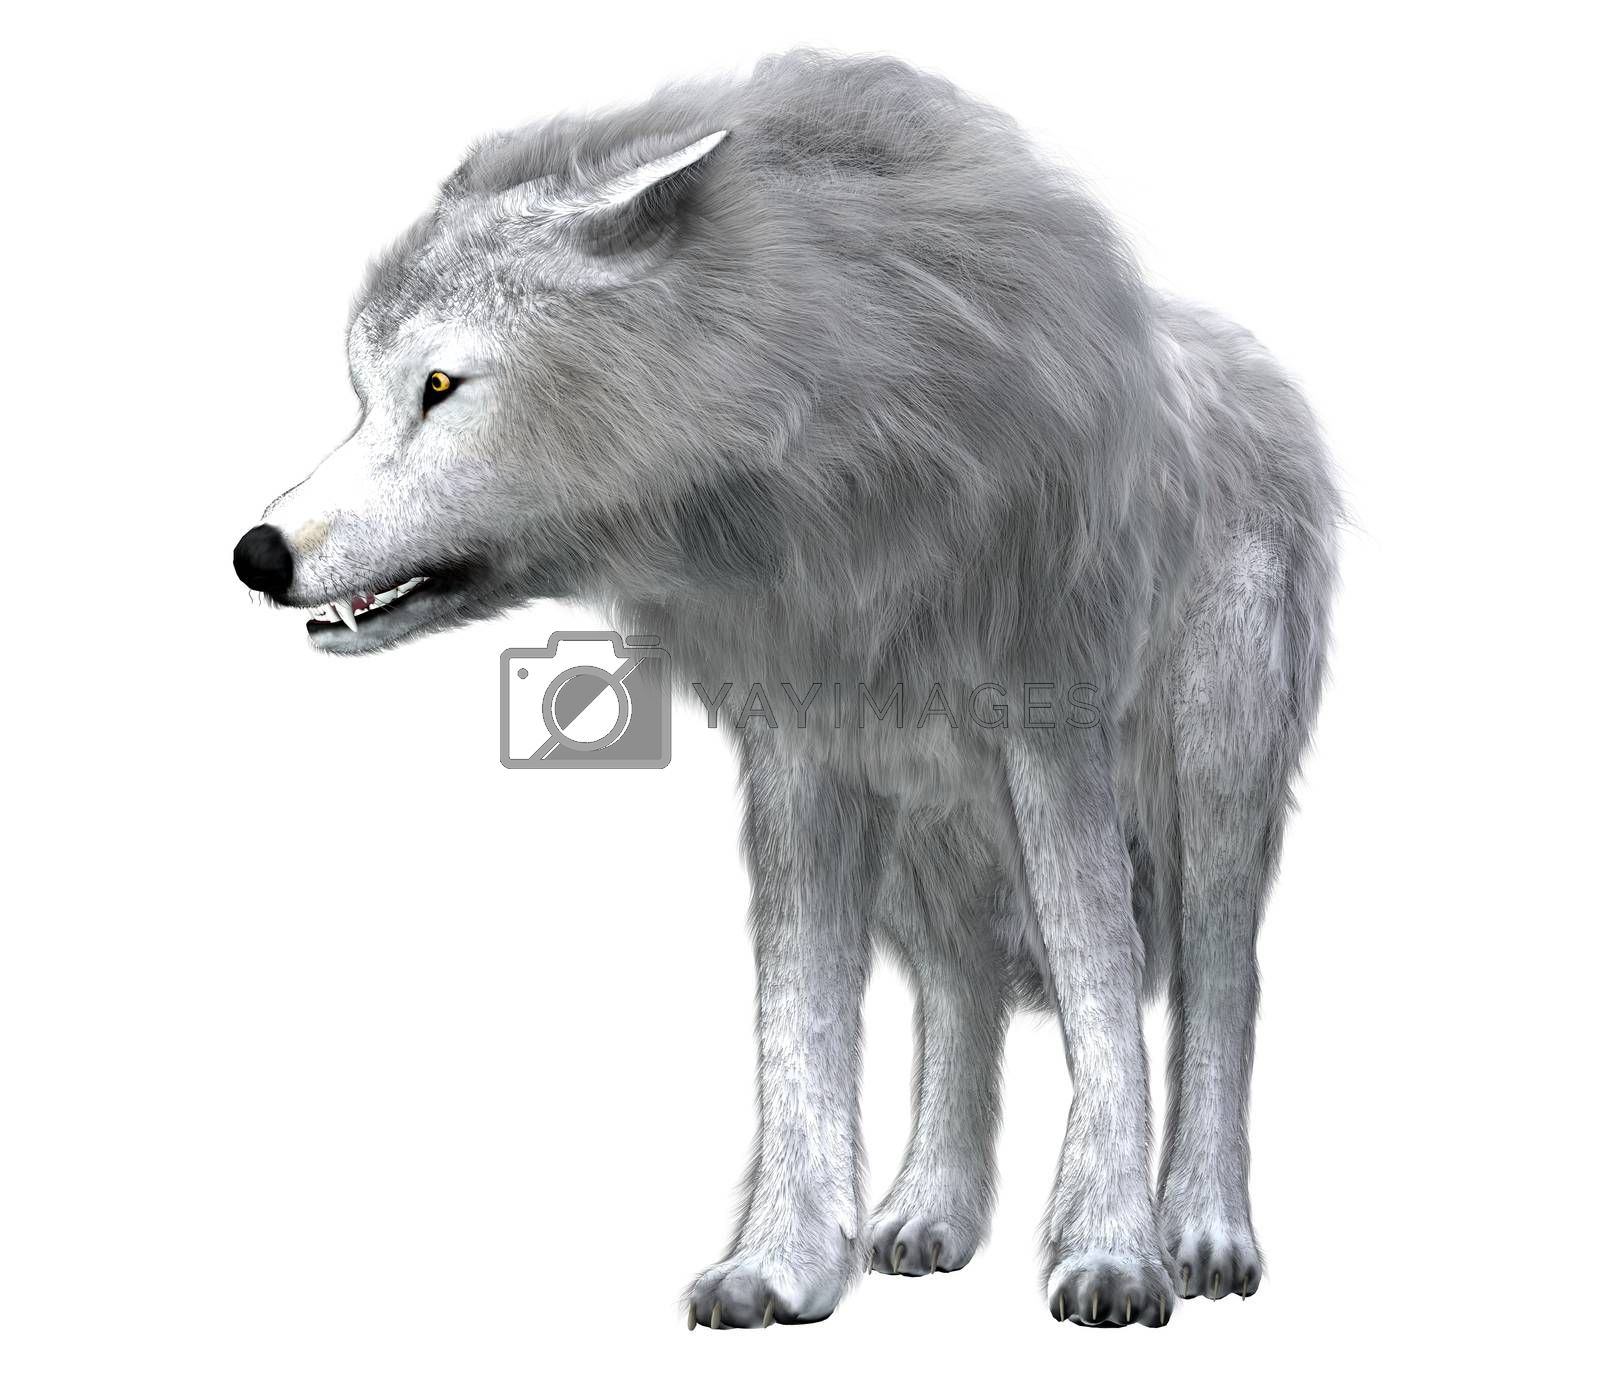 The predatory Dire Wolf prowled the forests of North and South America during the Pleistocene Period.